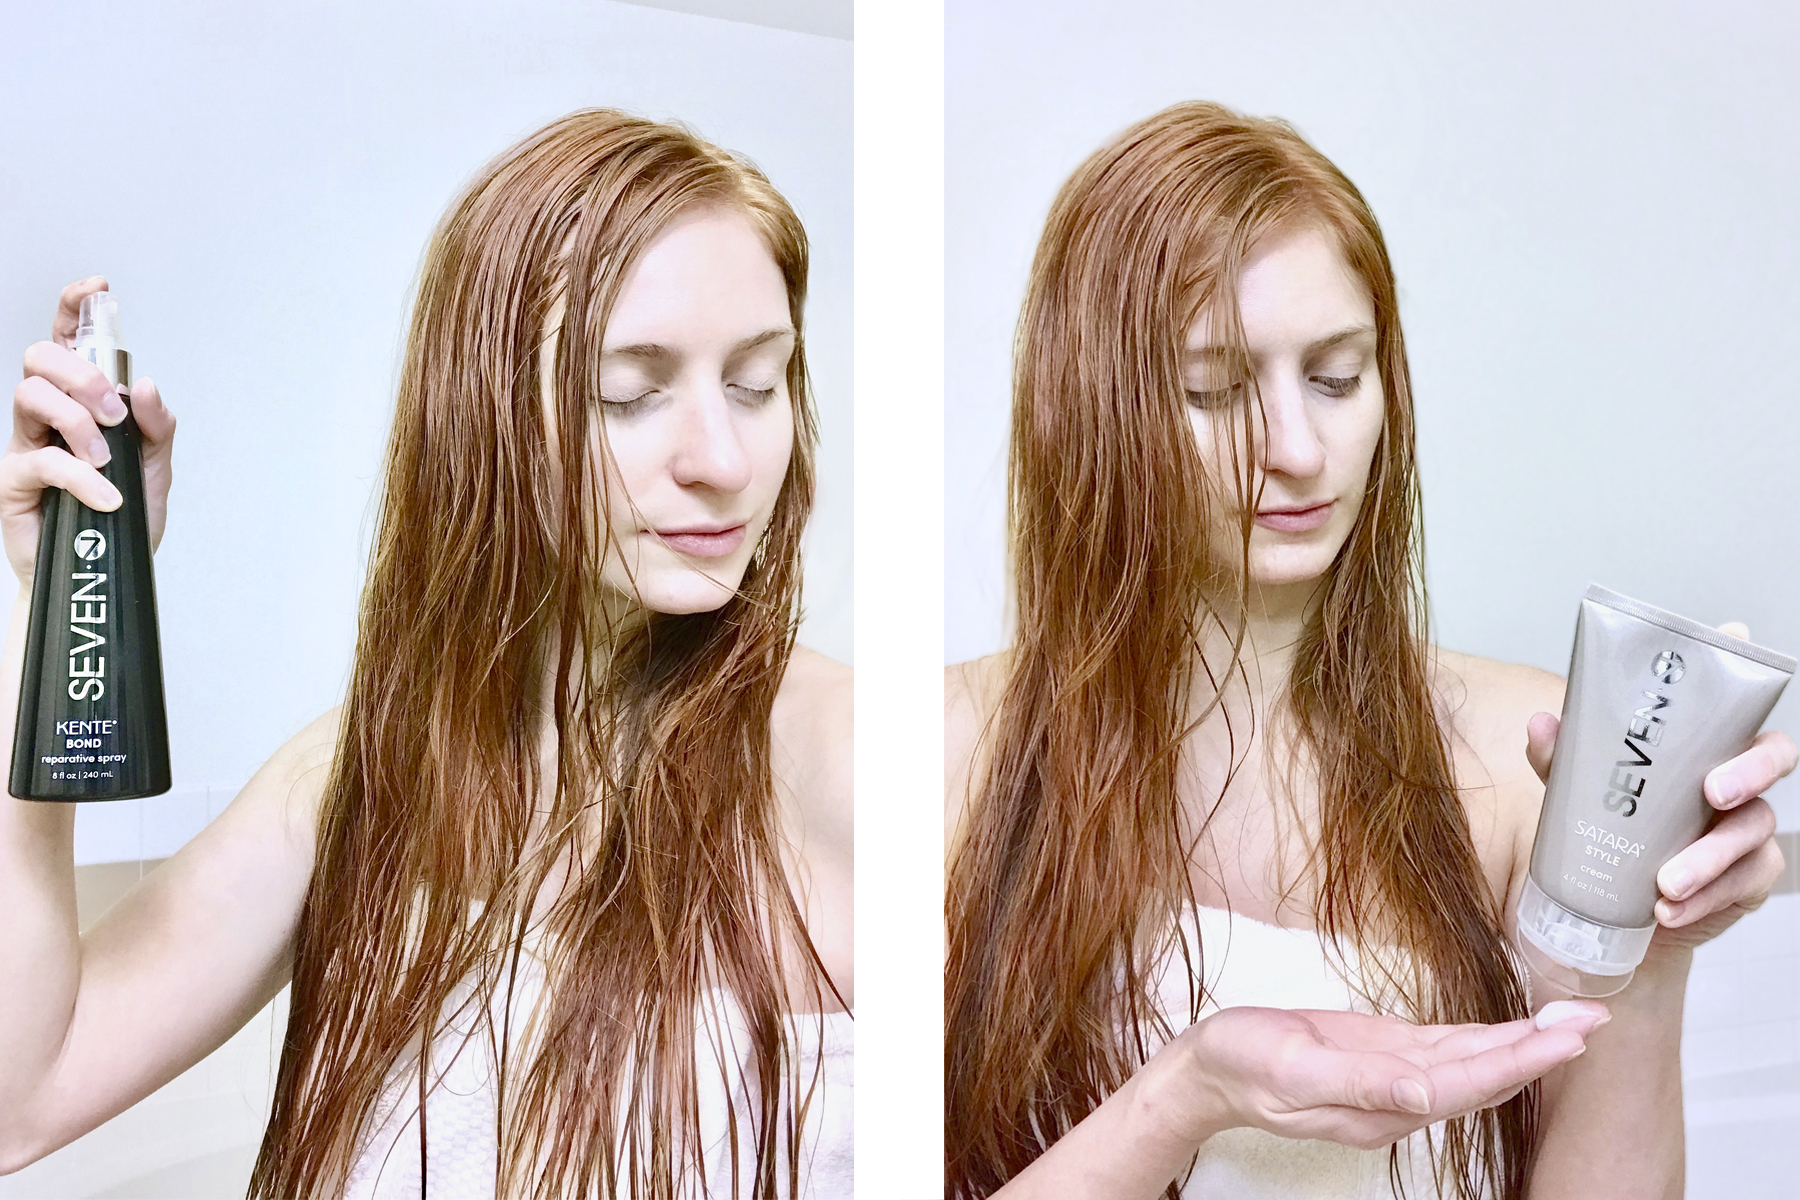 side by side of Erin Leigh of she's red haute using Seven hair care's reparative spray and style cream on red hair for a she's red haute blog